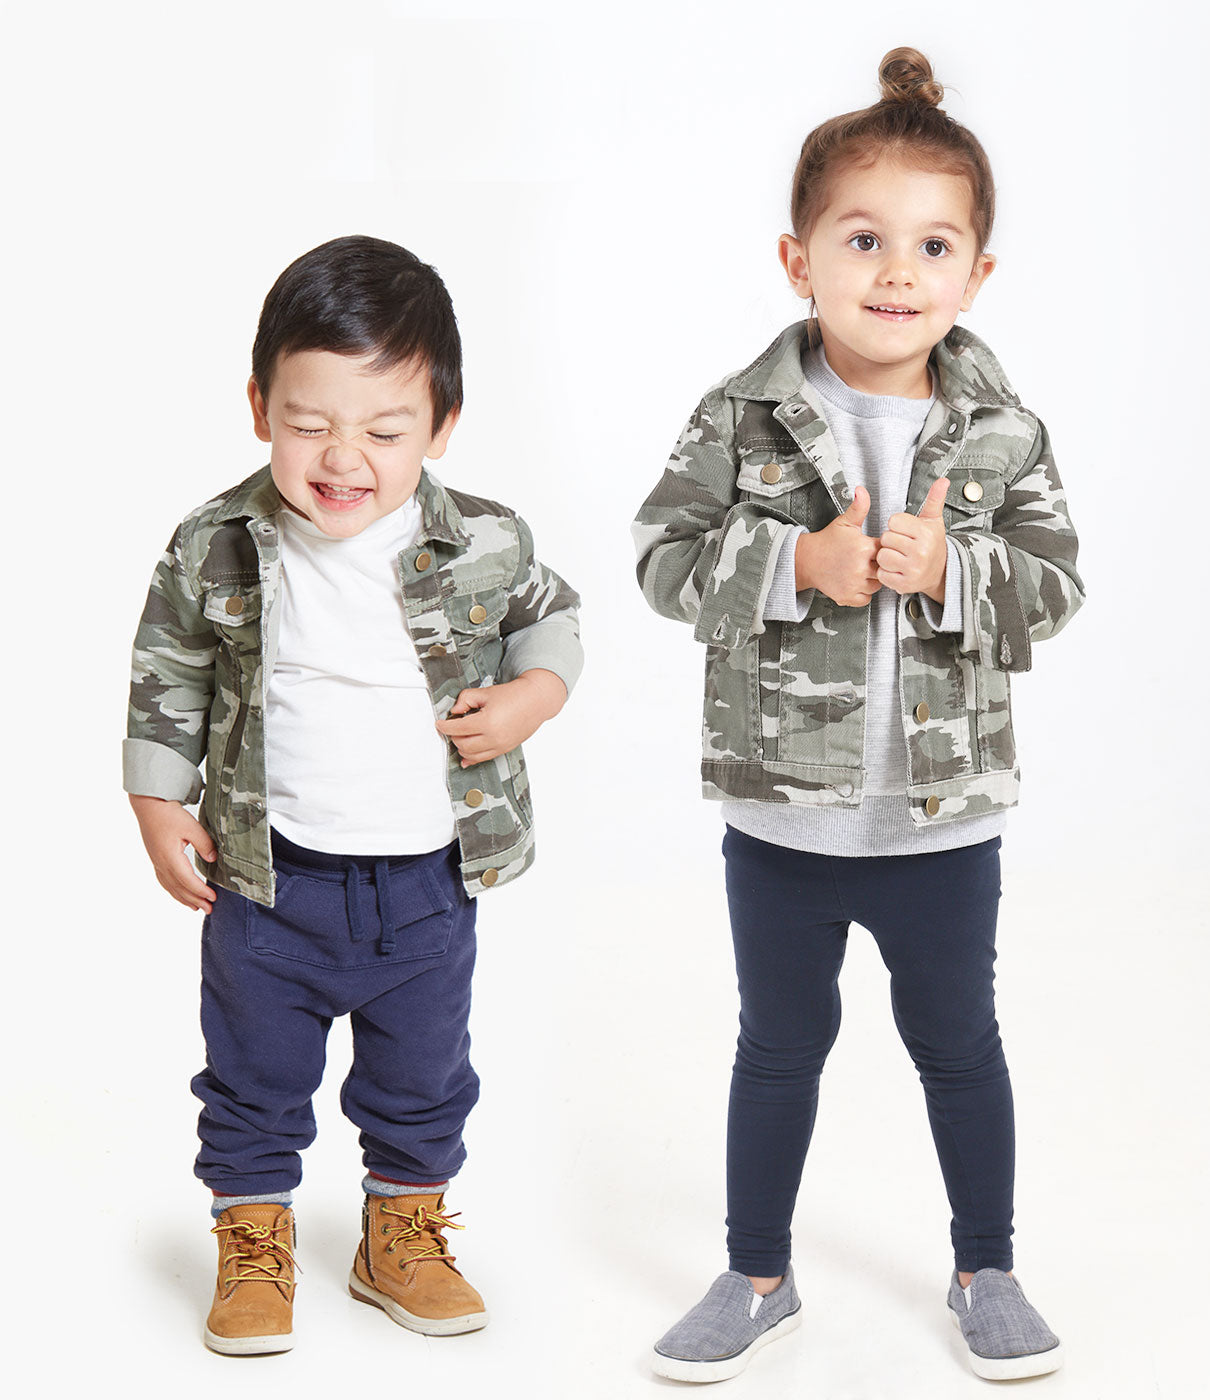 Universal StyleGreat for girls and boys, sizes 3 months to 4T.